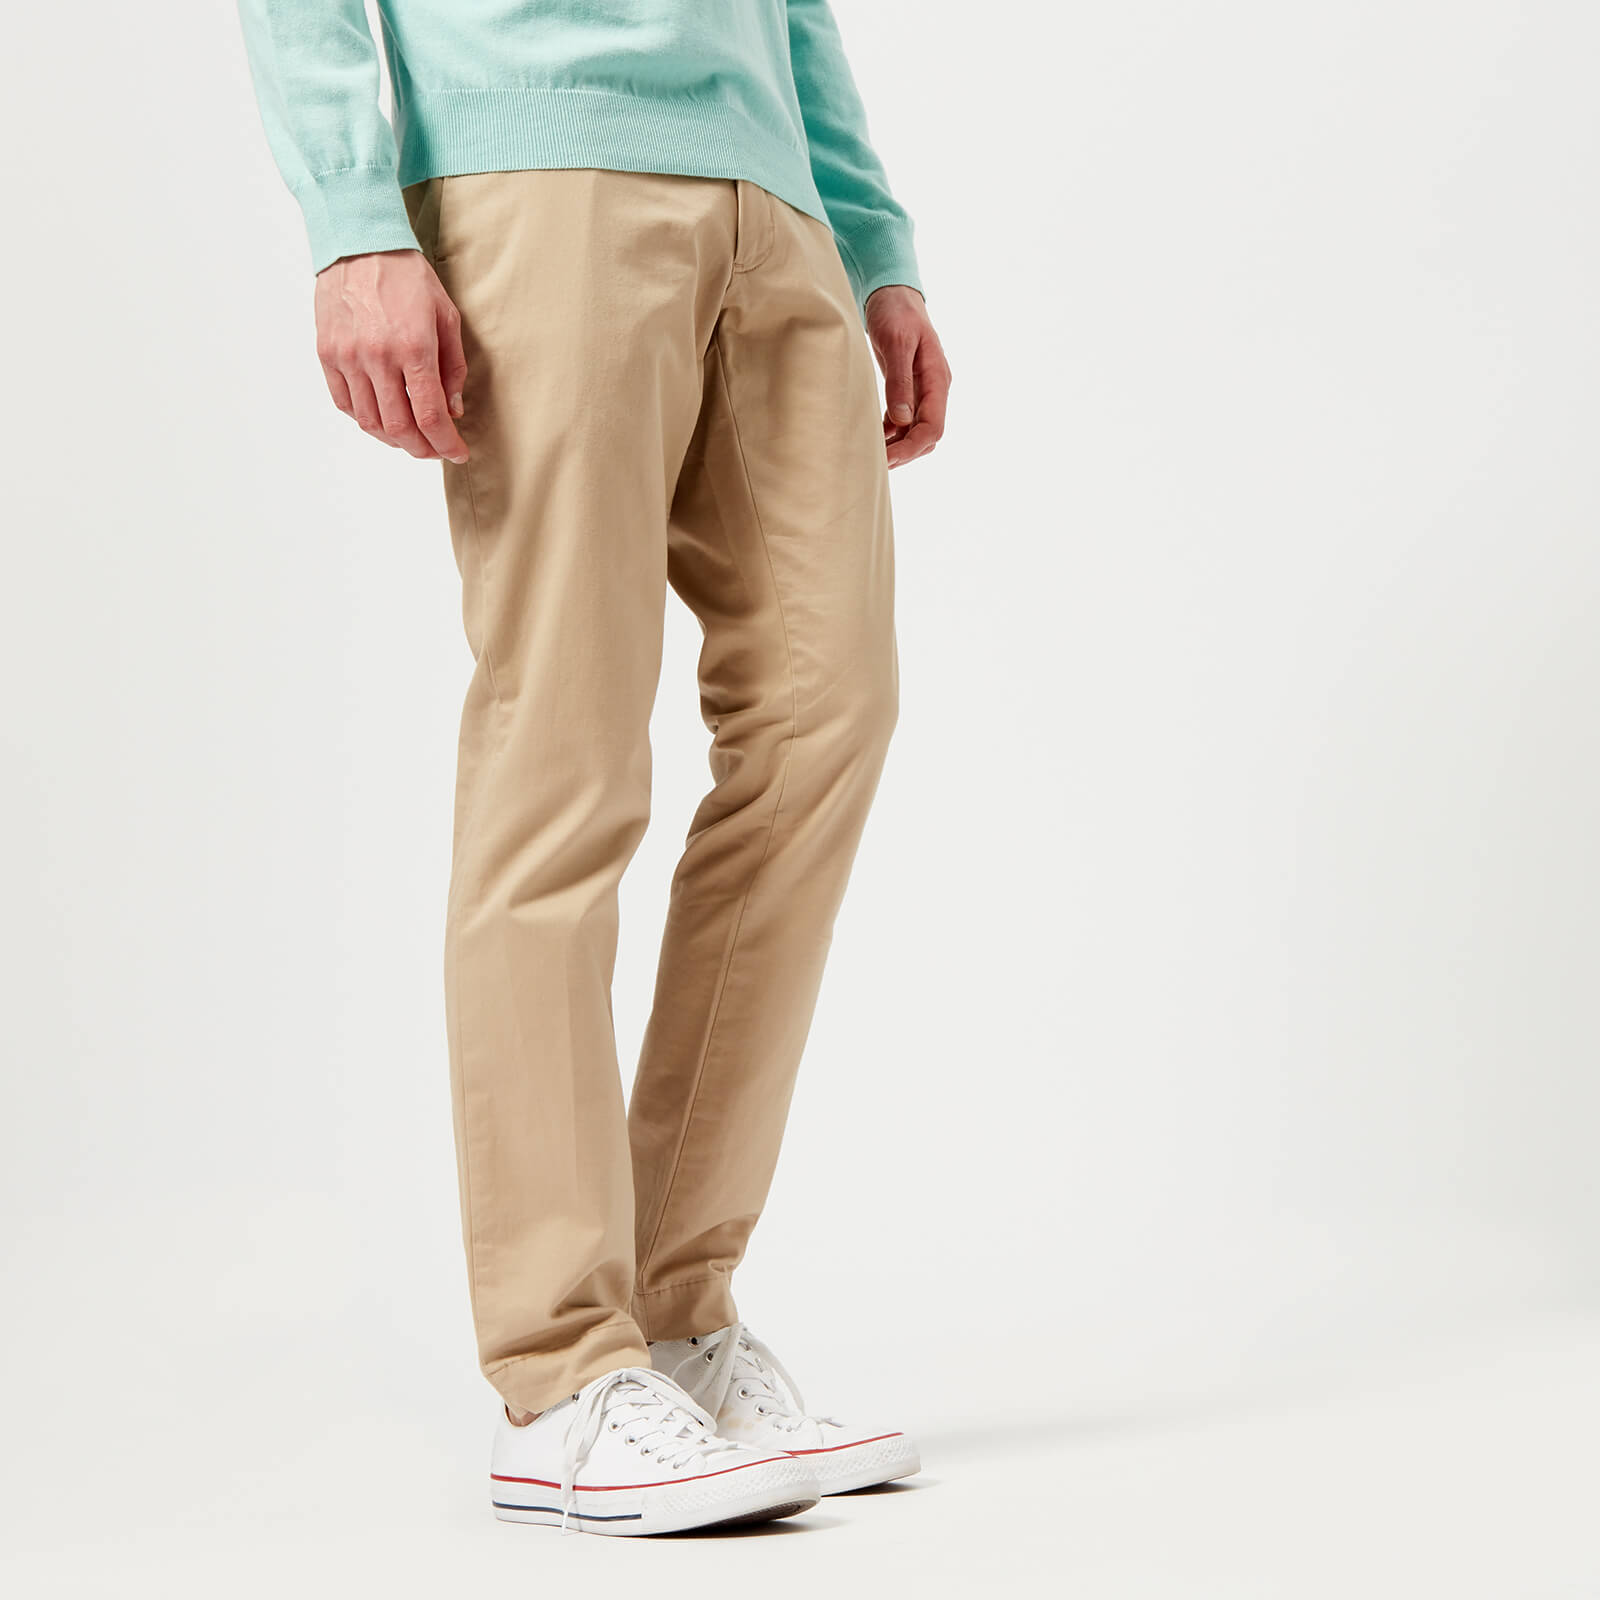 a1a8f7a62 Polo Ralph Lauren Men s Tailored Slim Fit Lightweight Military Chinos - Classic  Khaki - Free UK Delivery over £50